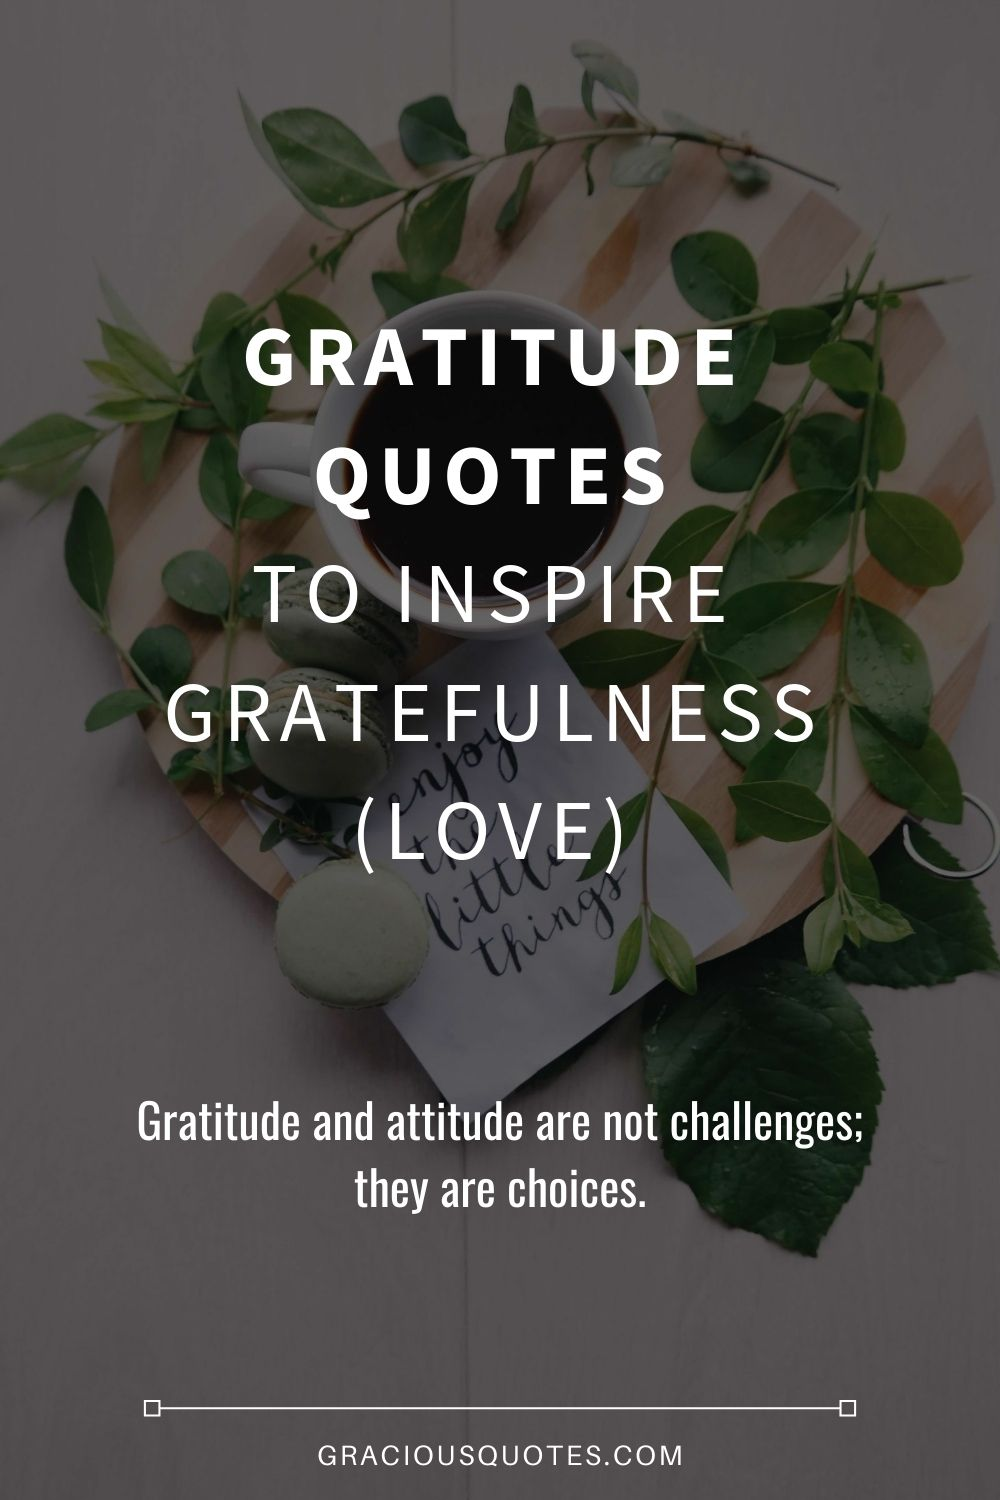 Gratitude Quotes to Inspire Gratefulness (LOVE) - Gracious Quotes